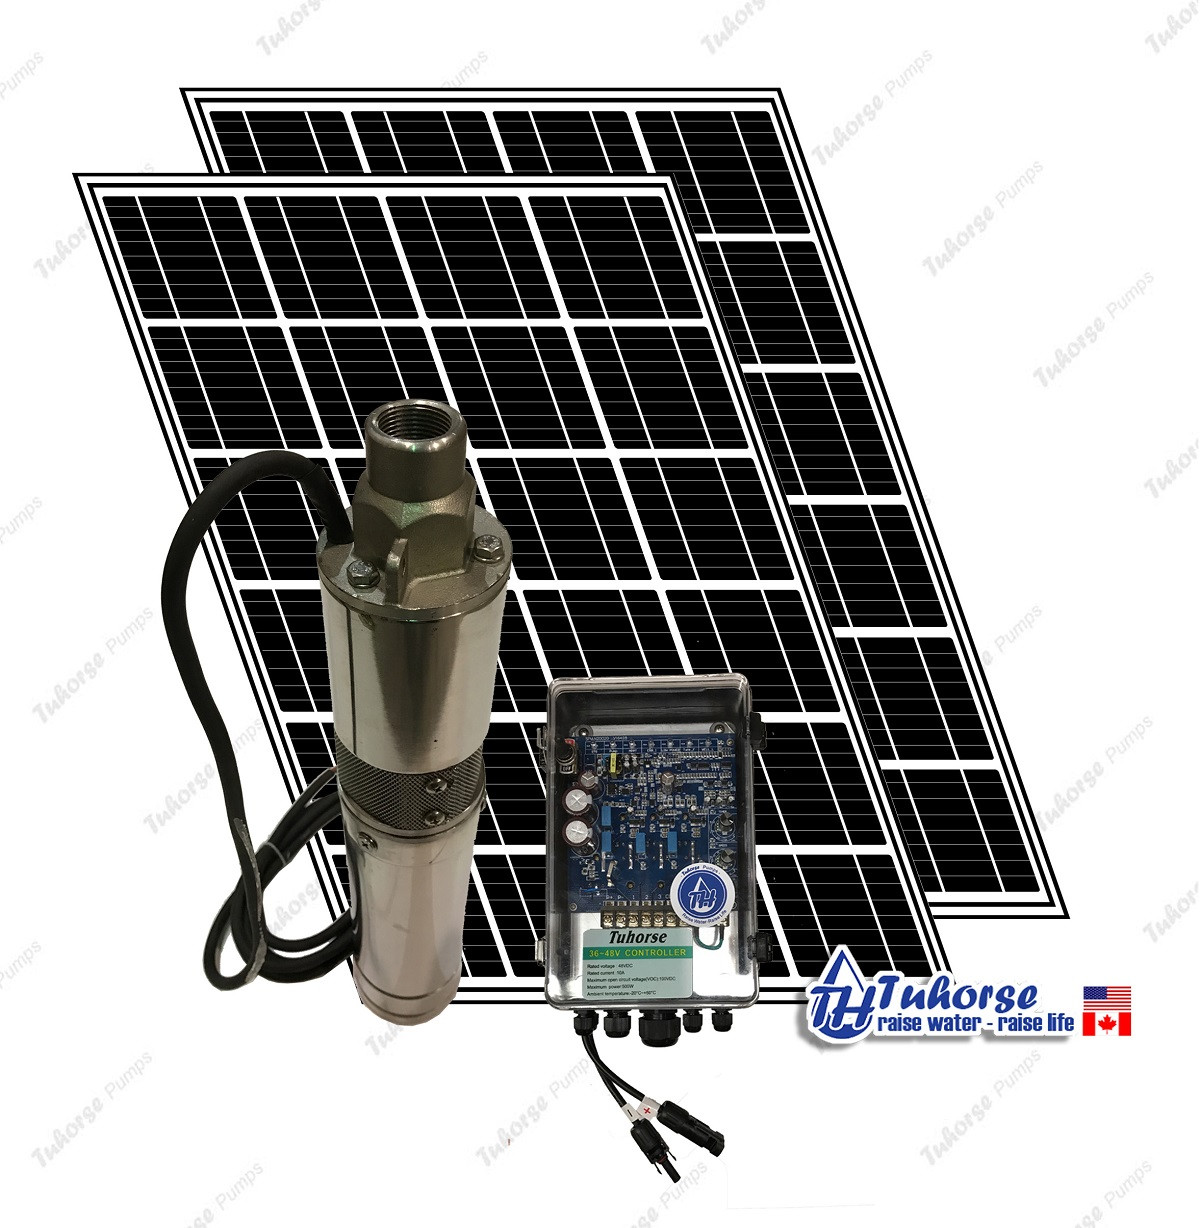 hight resolution of solar water pumps 500w 4gpm deep well pump tuhorse wiring 4 wire 220 to 3 prong plug as well solar panel prices